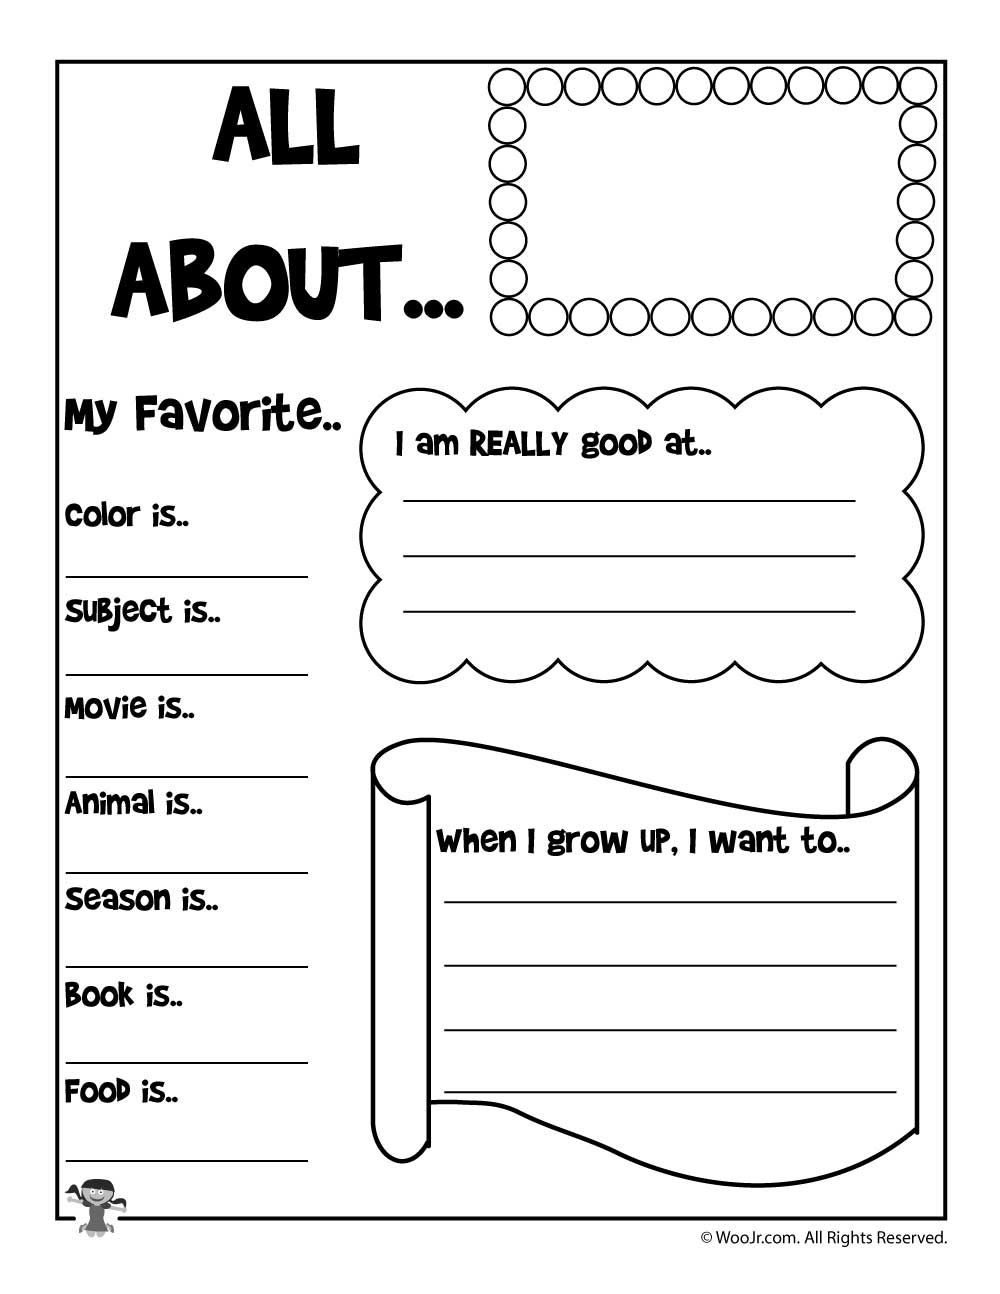 Inferencing Worksheets 4th Grade Printable About Worksheets with All 4th Grade Work